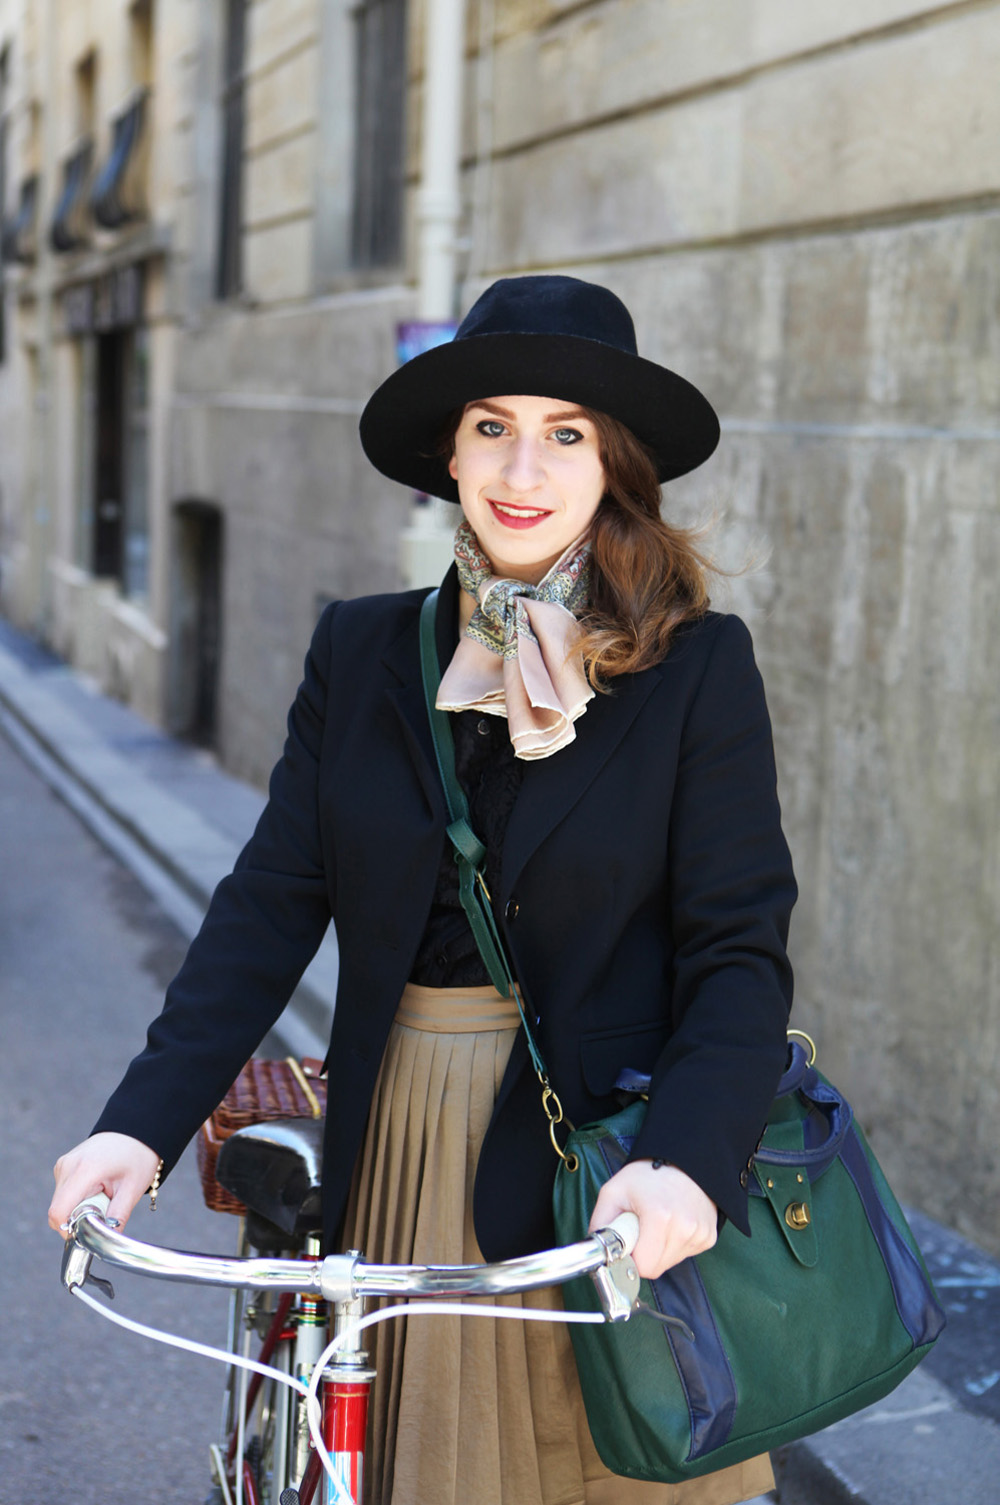 Beret-Baguette-Paris-Bike-Pretty-Bike-Fashion-Photo-Kelly-Miller-4